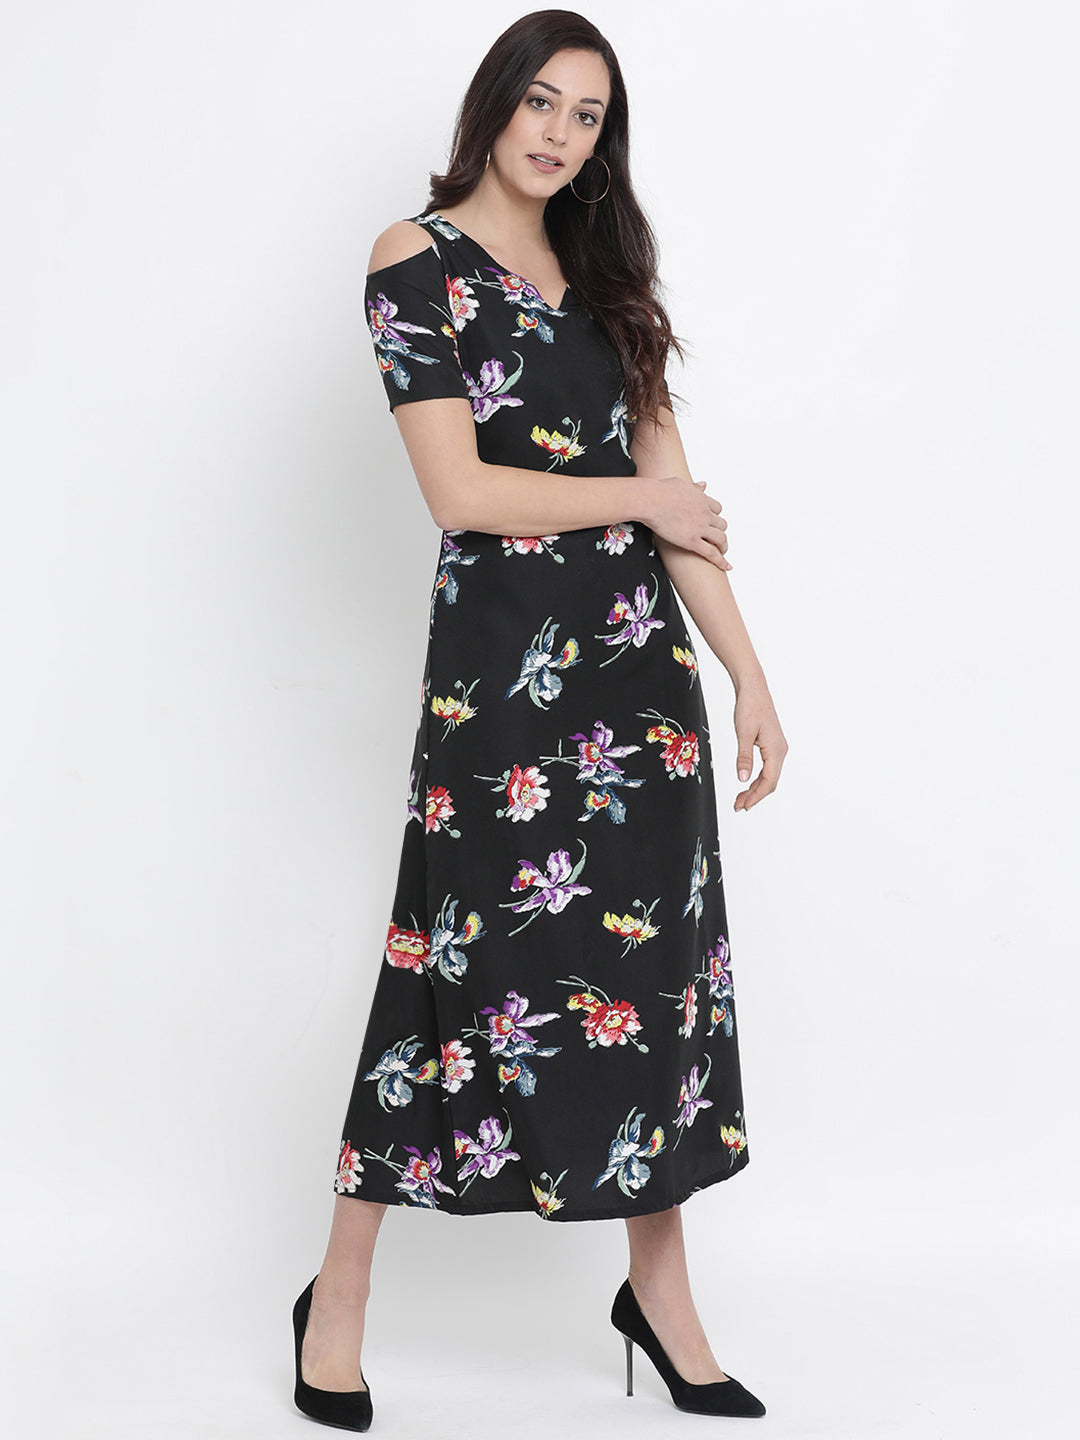 3140c60194 Fabnest womens crepe black floral print cold shoulder maxi dress